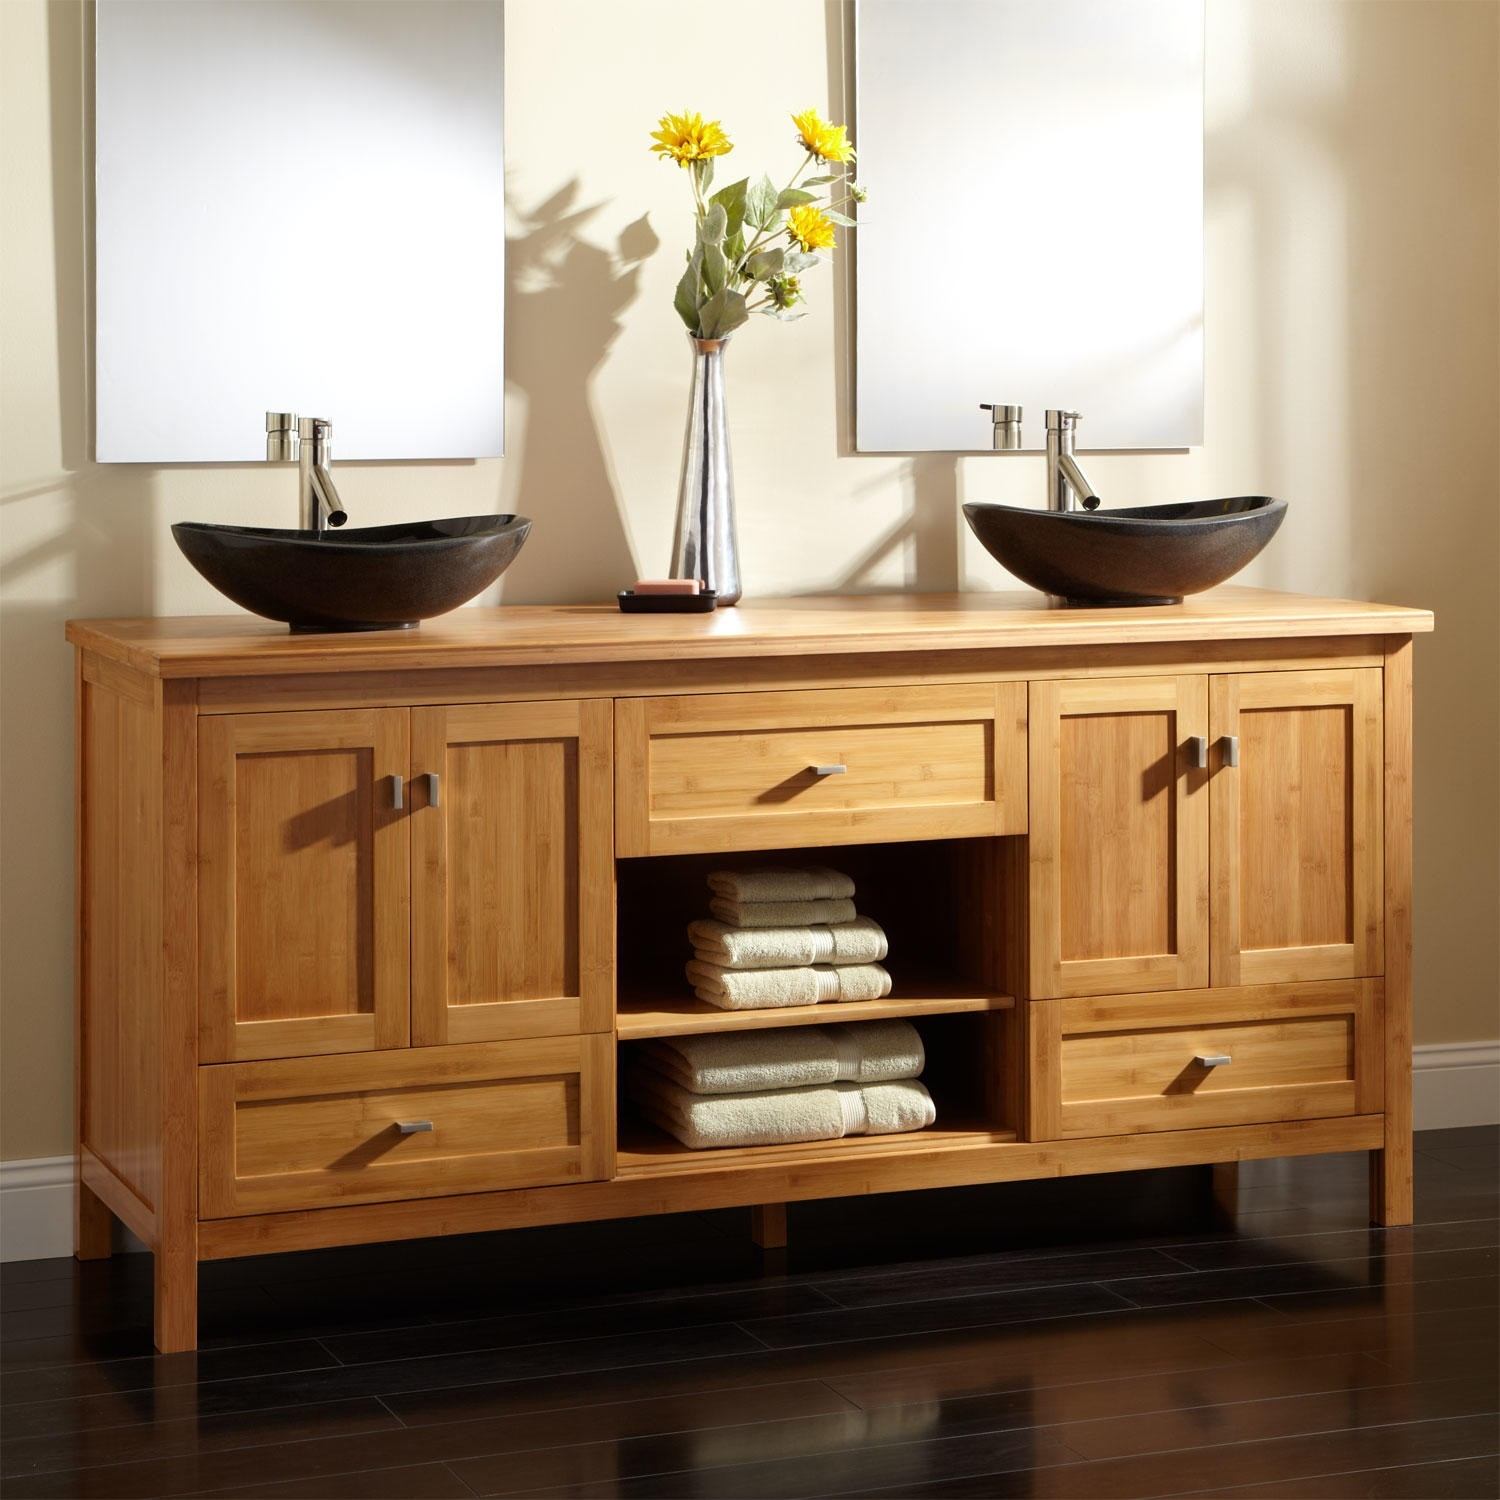 Bathroom Vanity Cabinet With Topbamboo vanities bathroom vanities signature hardware